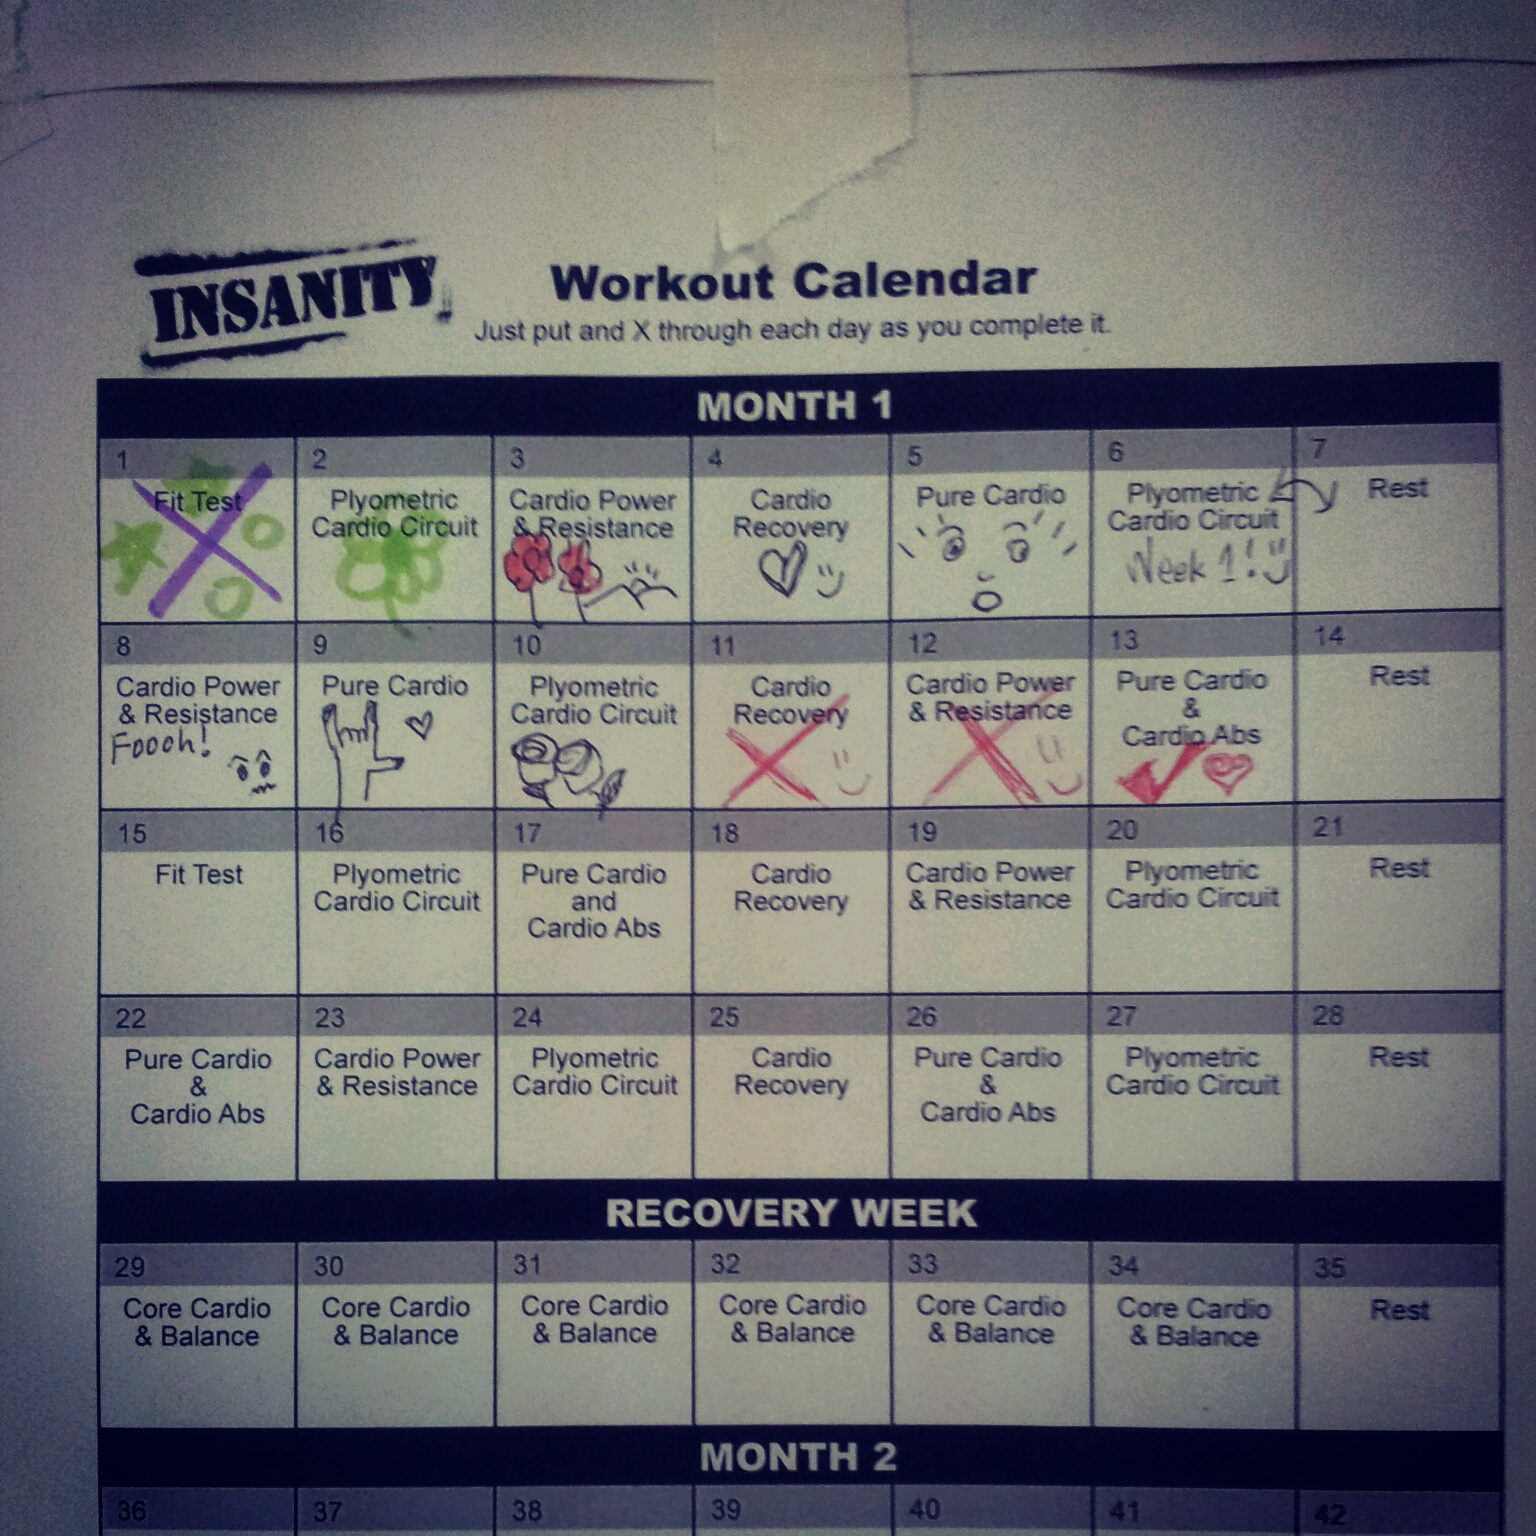 Insanity Fit Test Results This month 1 of insanity.